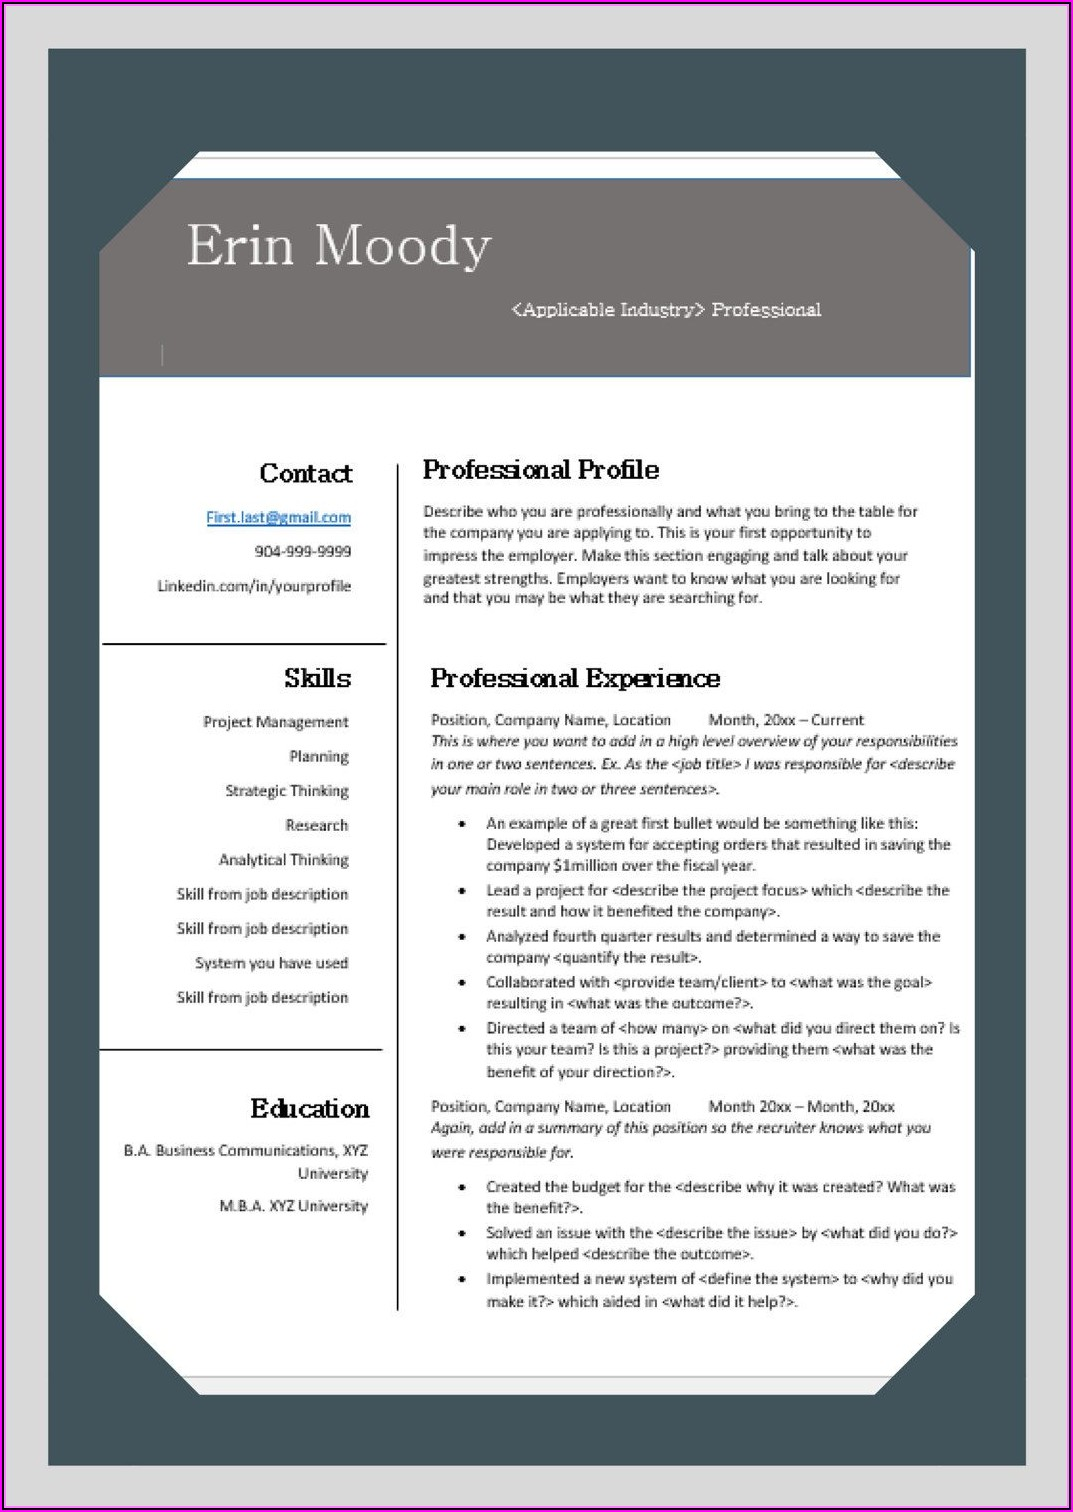 Free Resume Search Engines